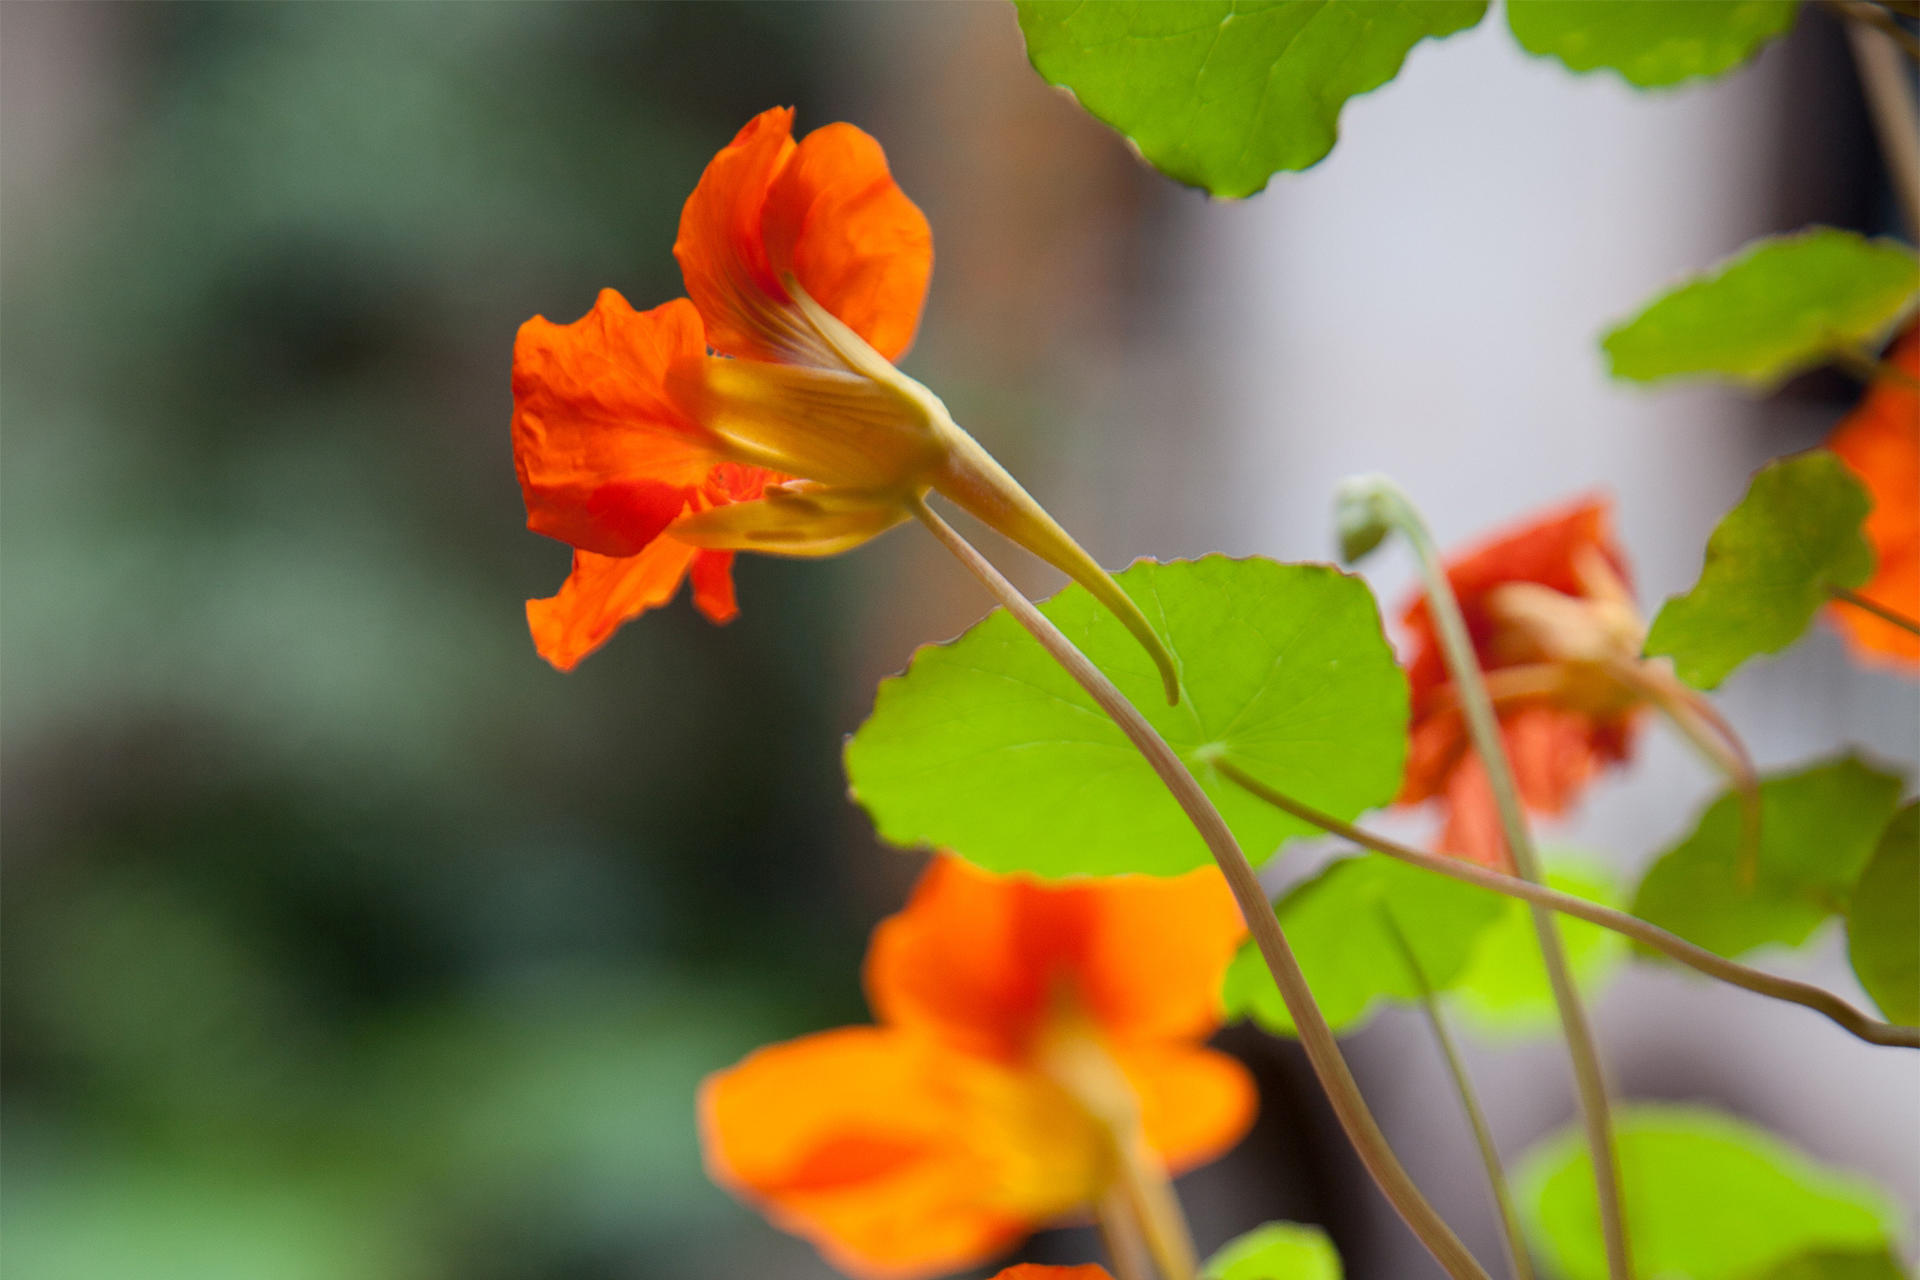 Hanging Nasturtiums courtyard display at the Isabella Stewart Gardner Museum.